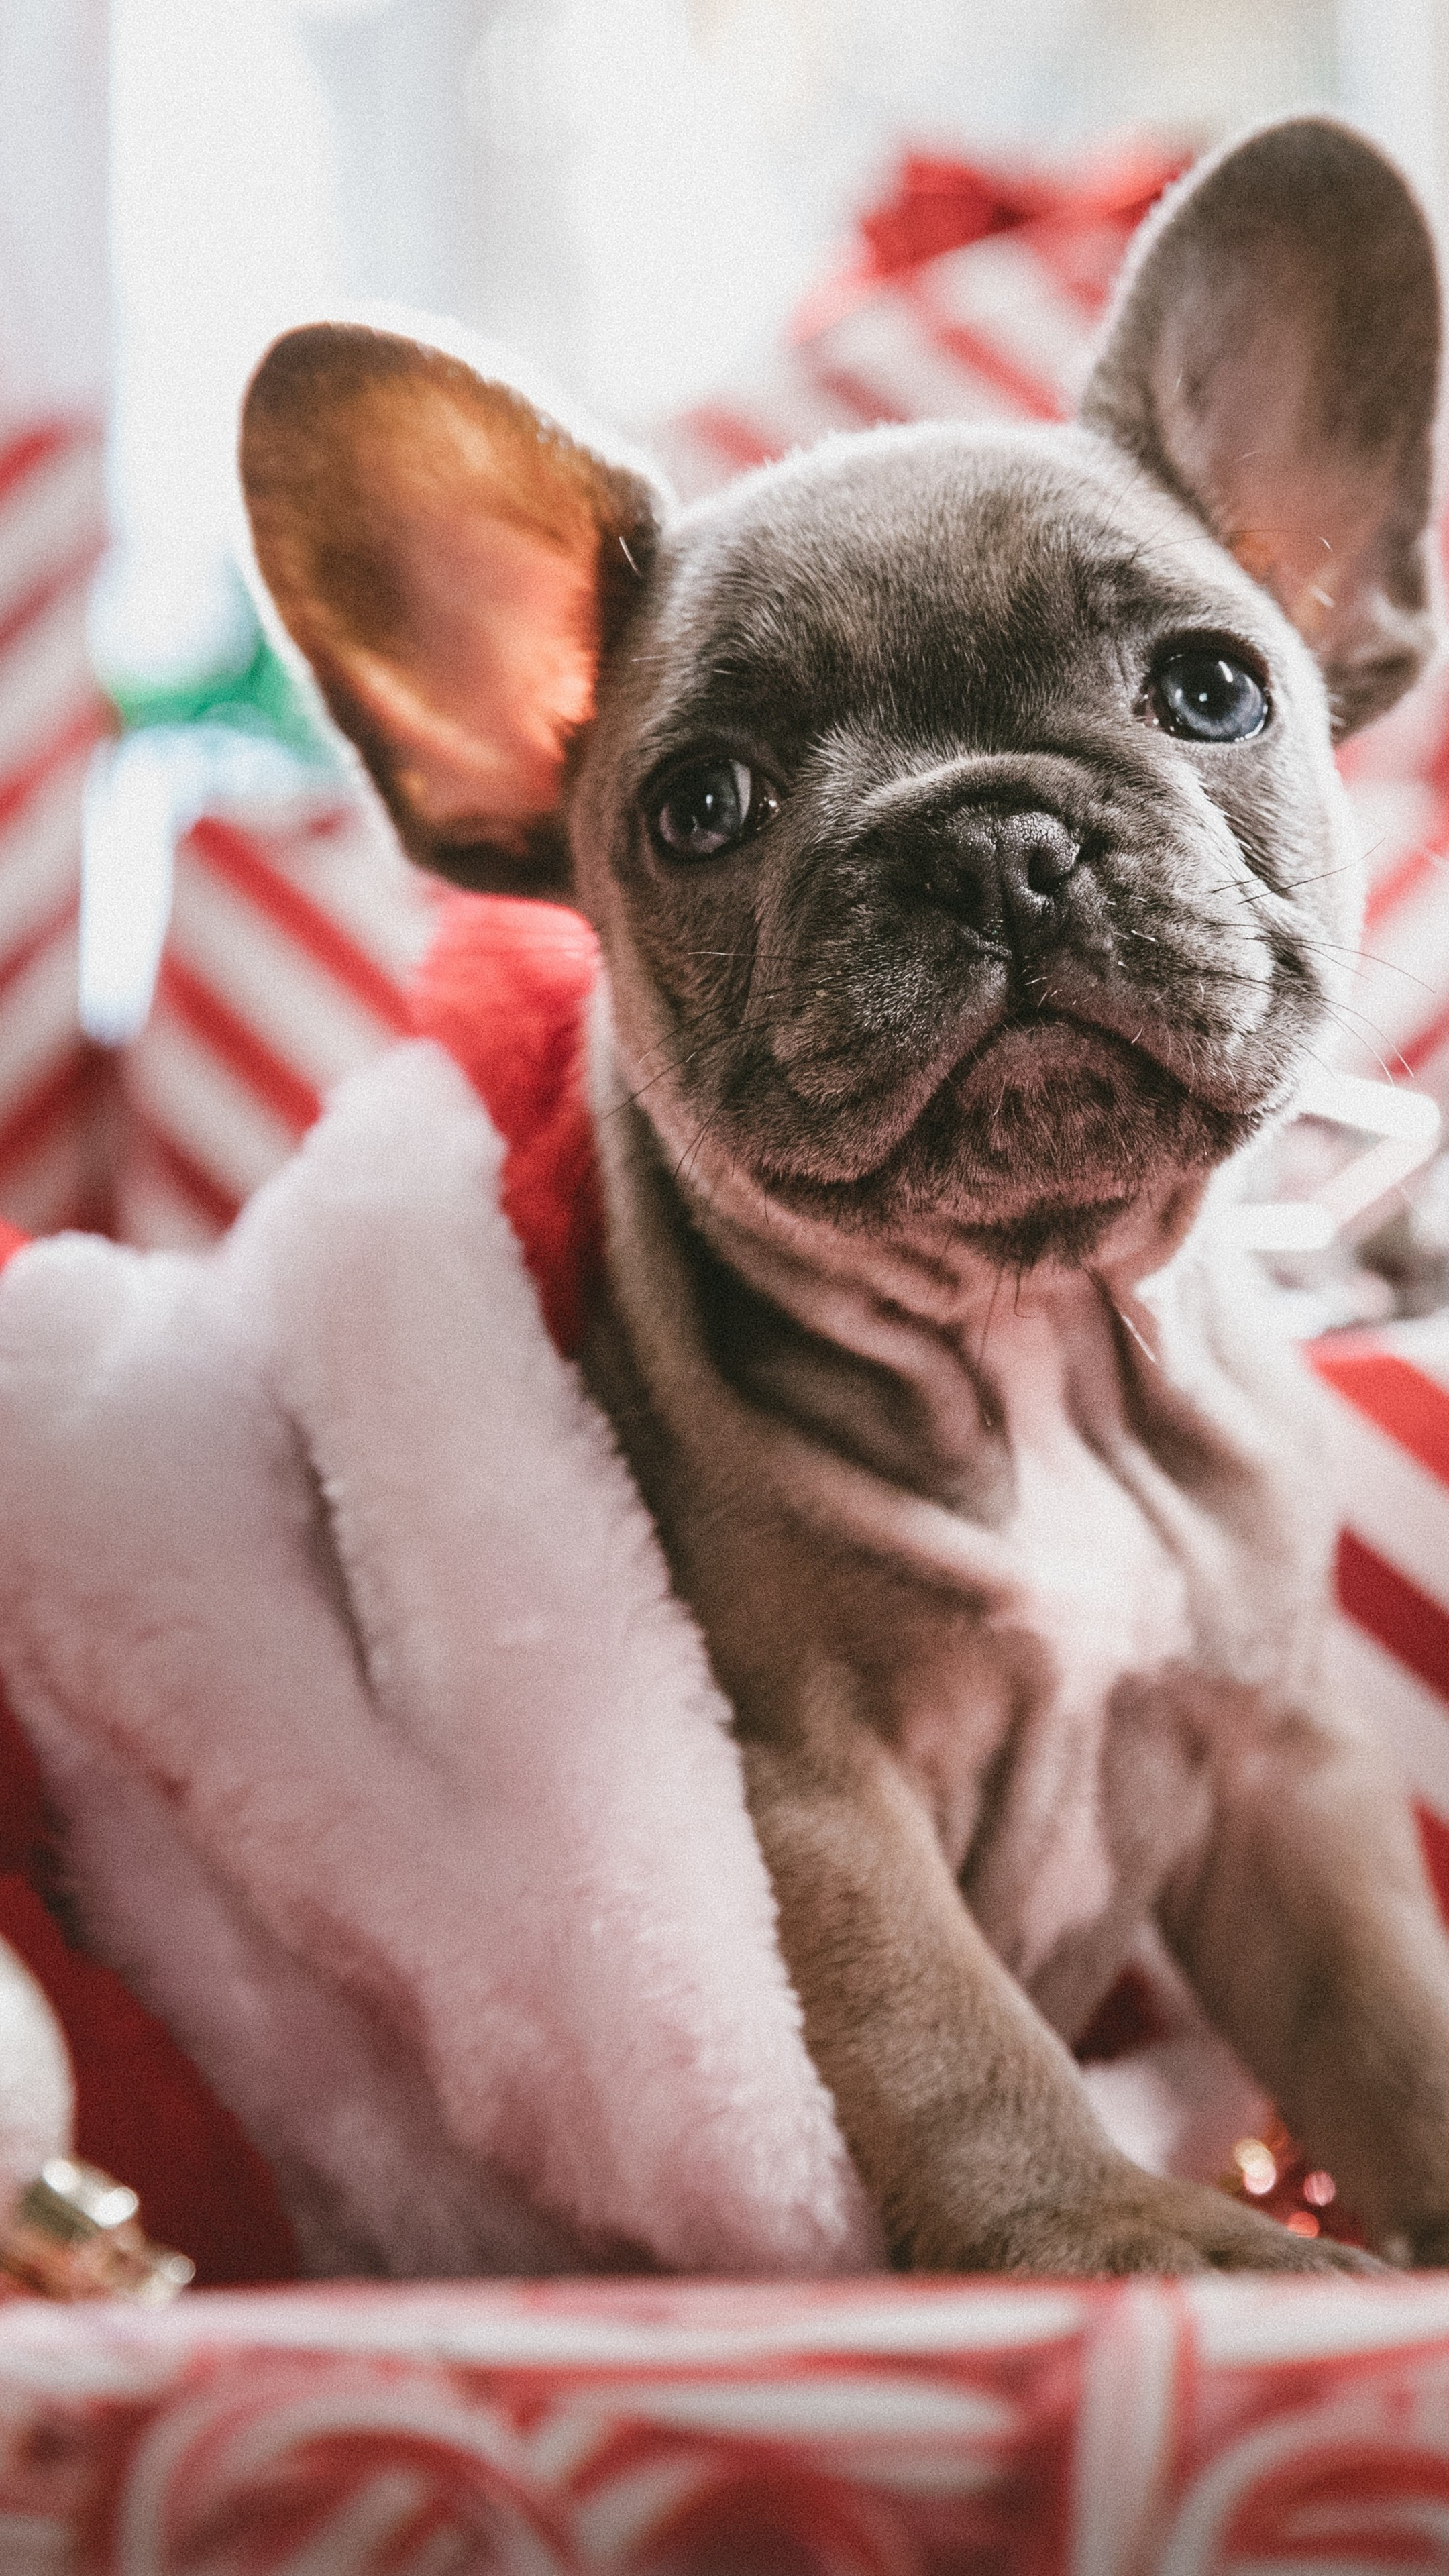 Cute Quotes Wallpapers Pinterest Wallpaper Christmas New Year Puppy Cute Animals 5k